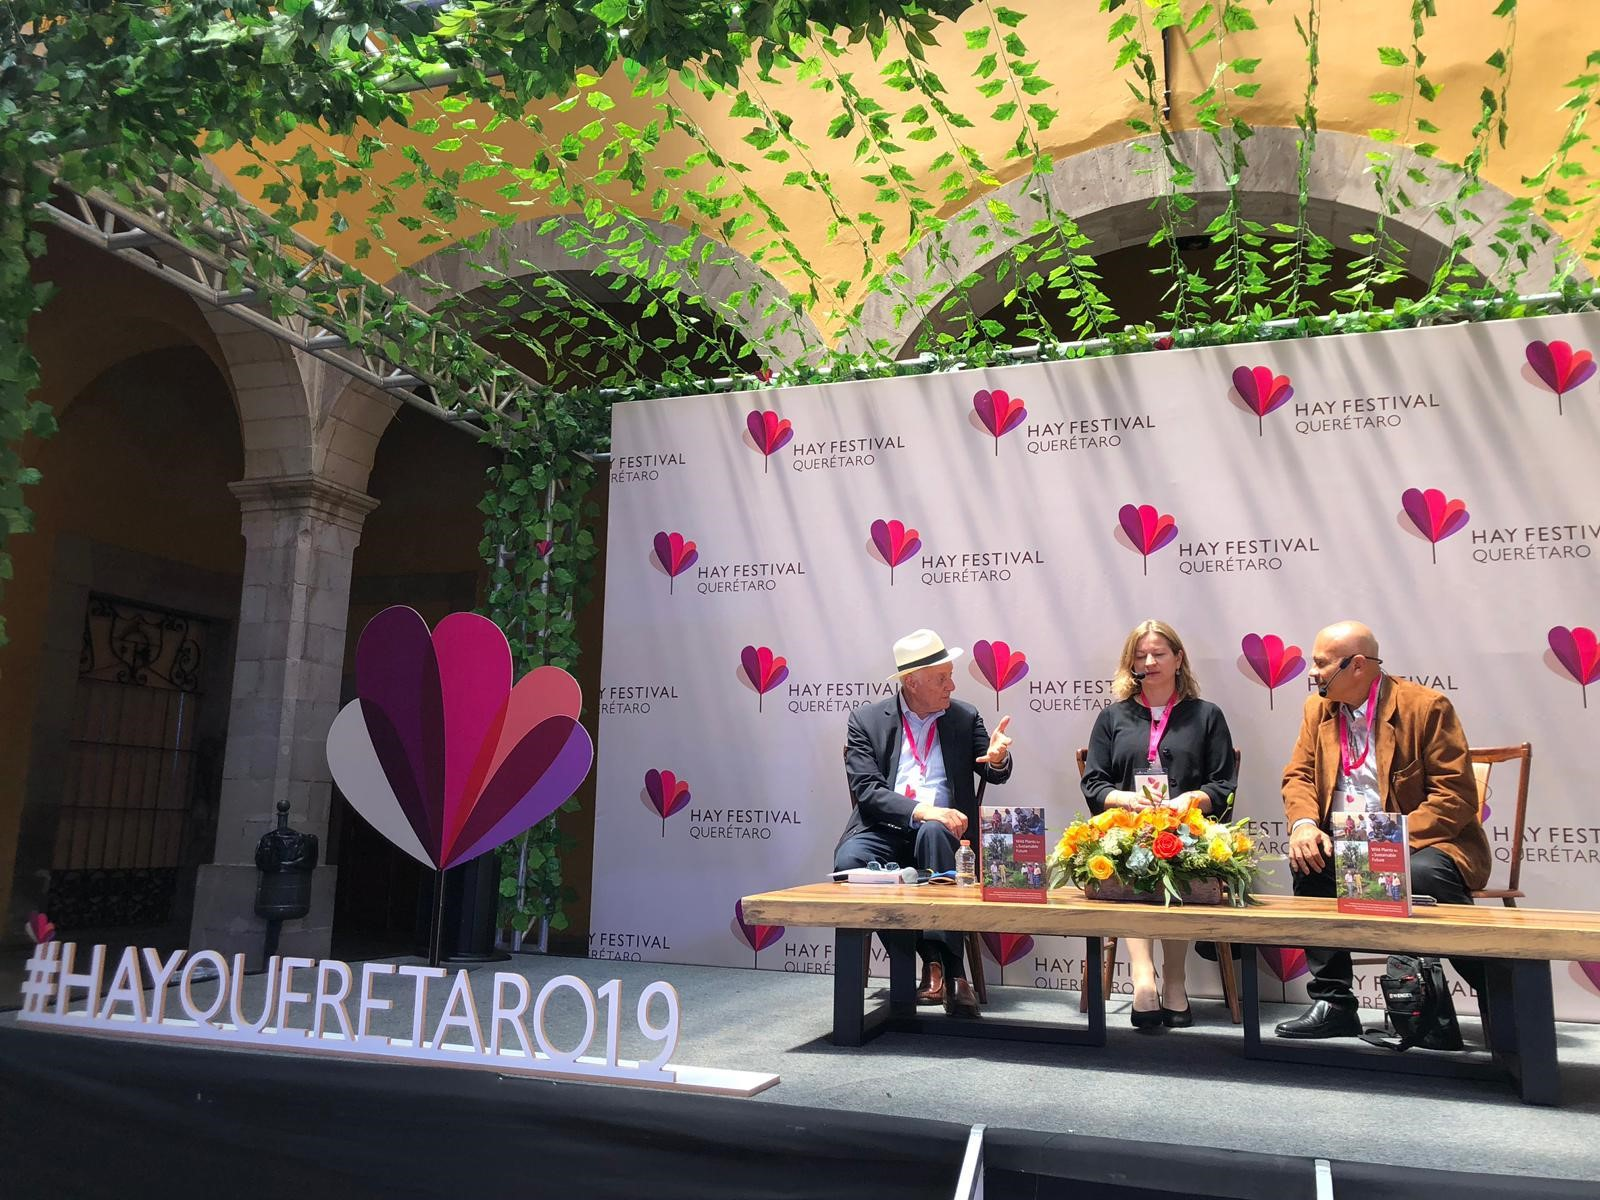 Tiziana on stage in front of Hay Festival backdrop with Andres ad Rafael